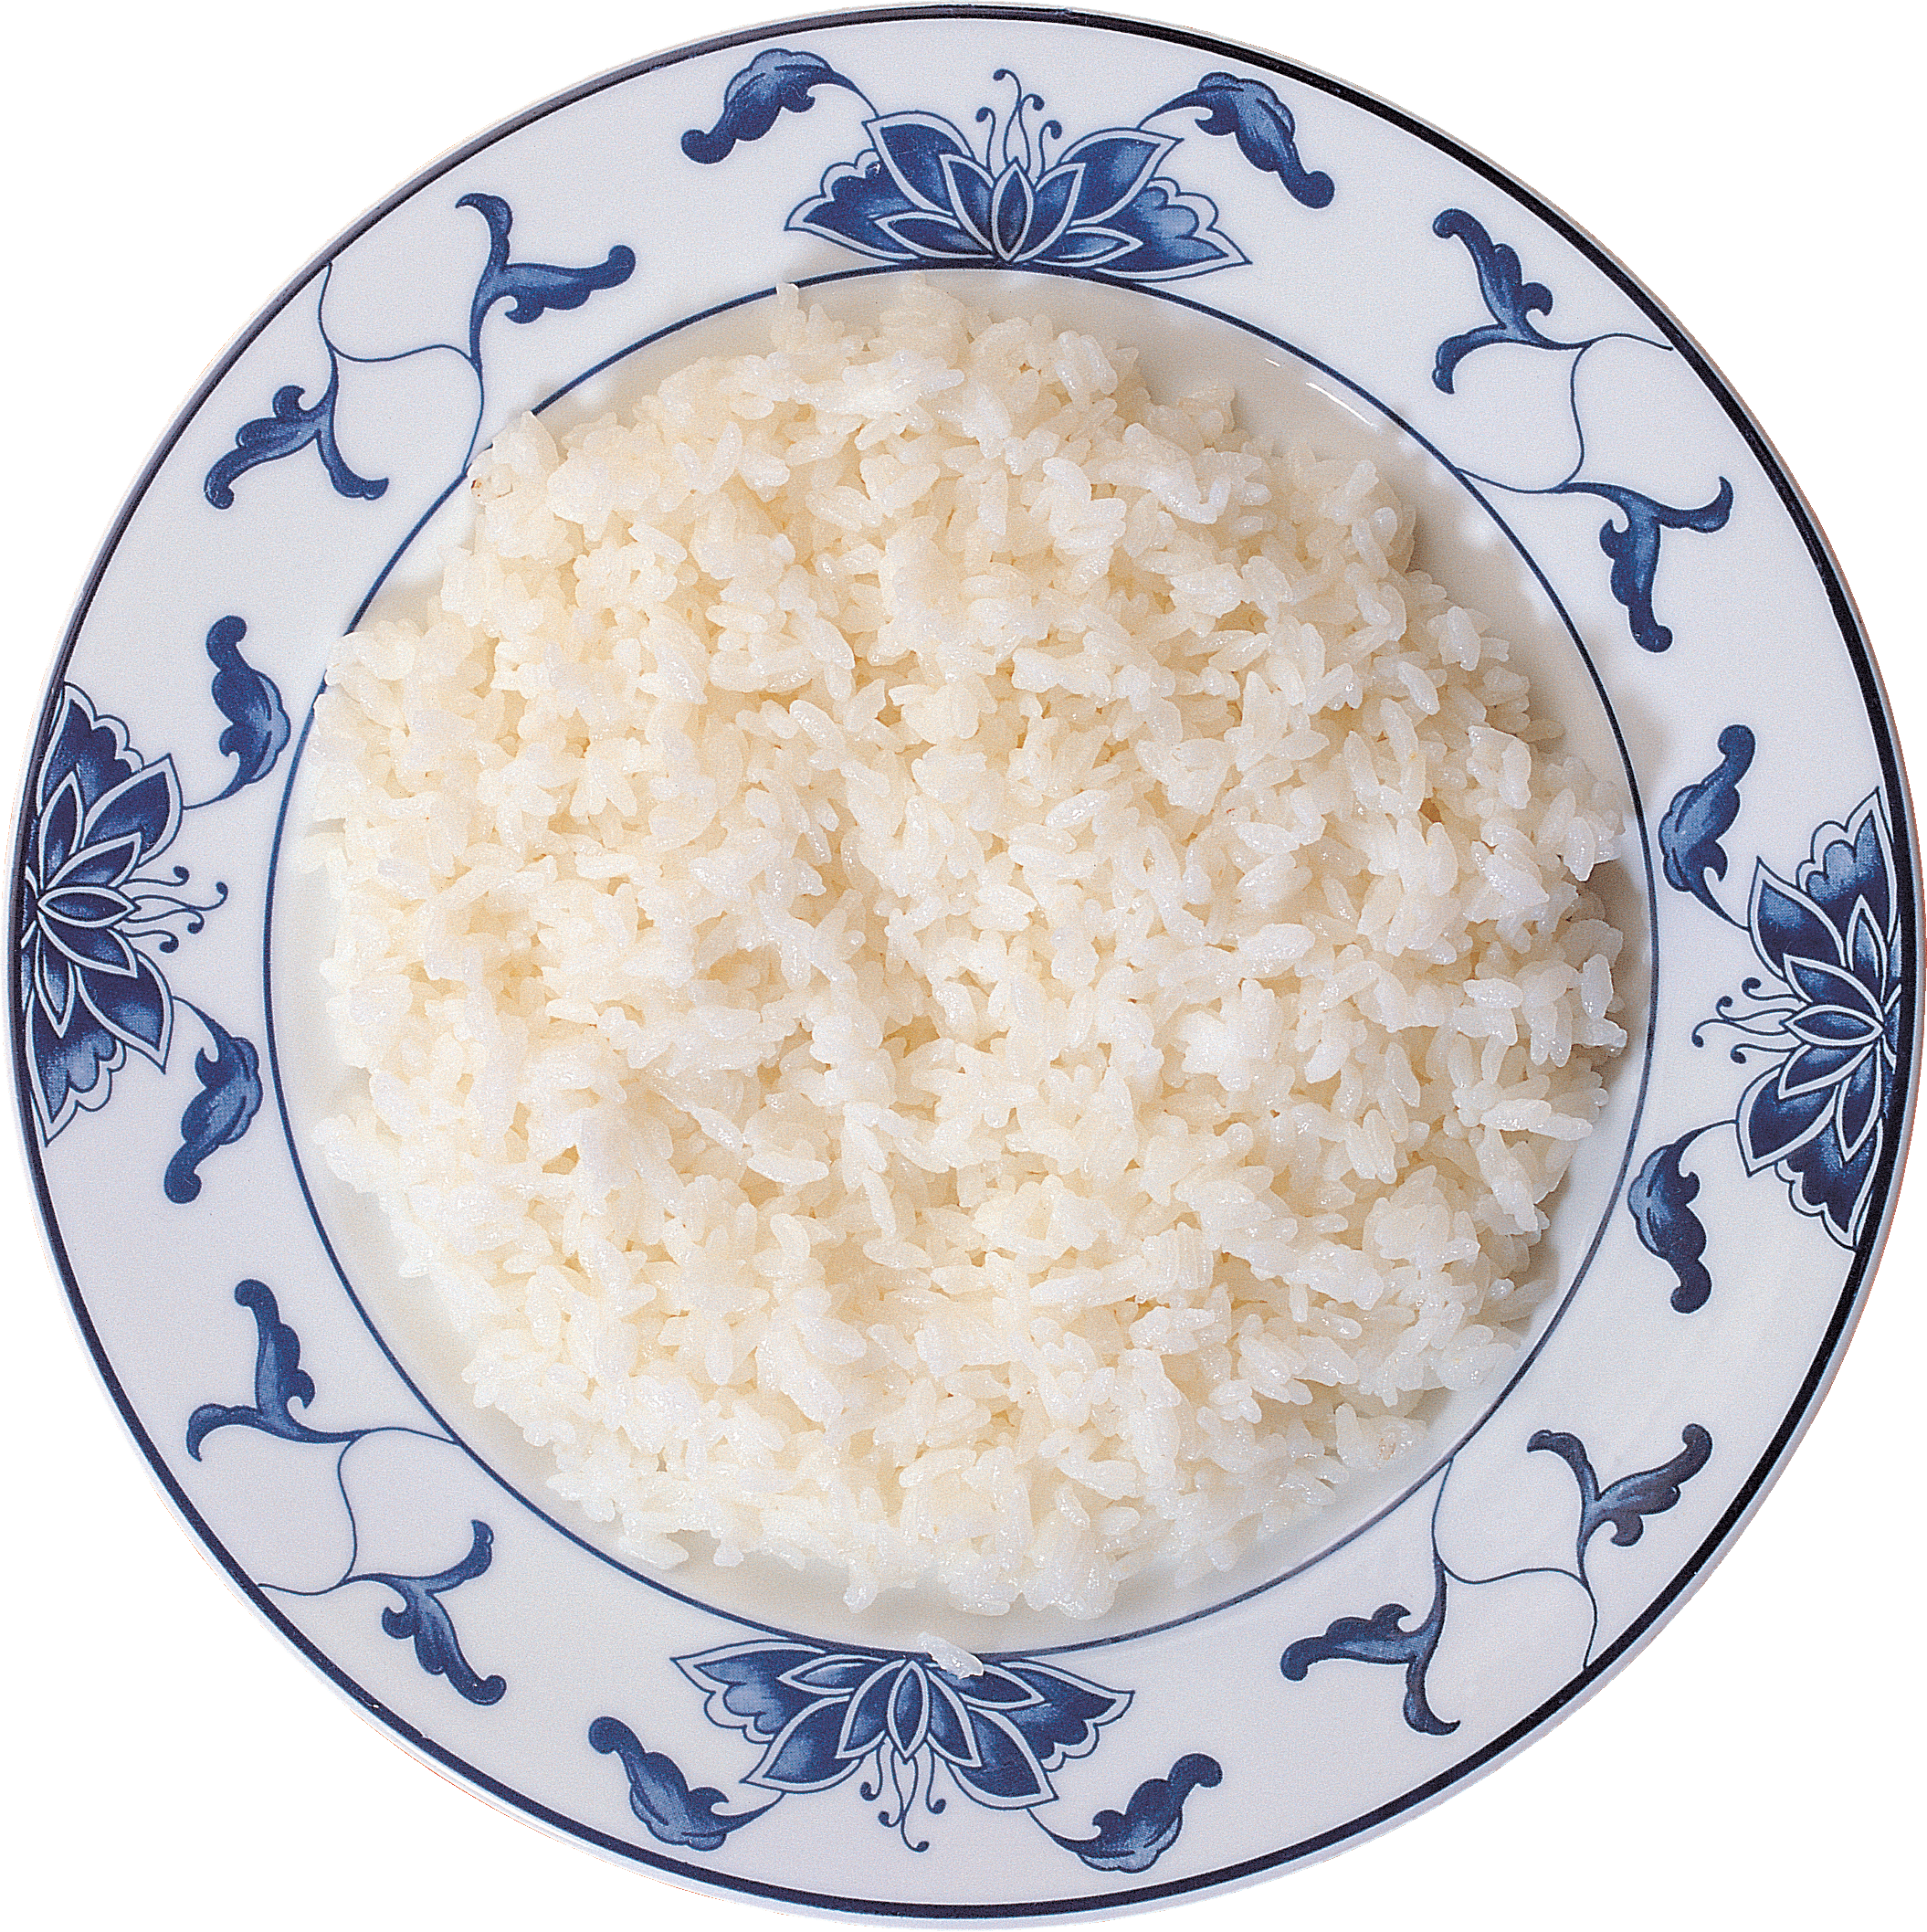 Png images free download. Rice clipart transparent background